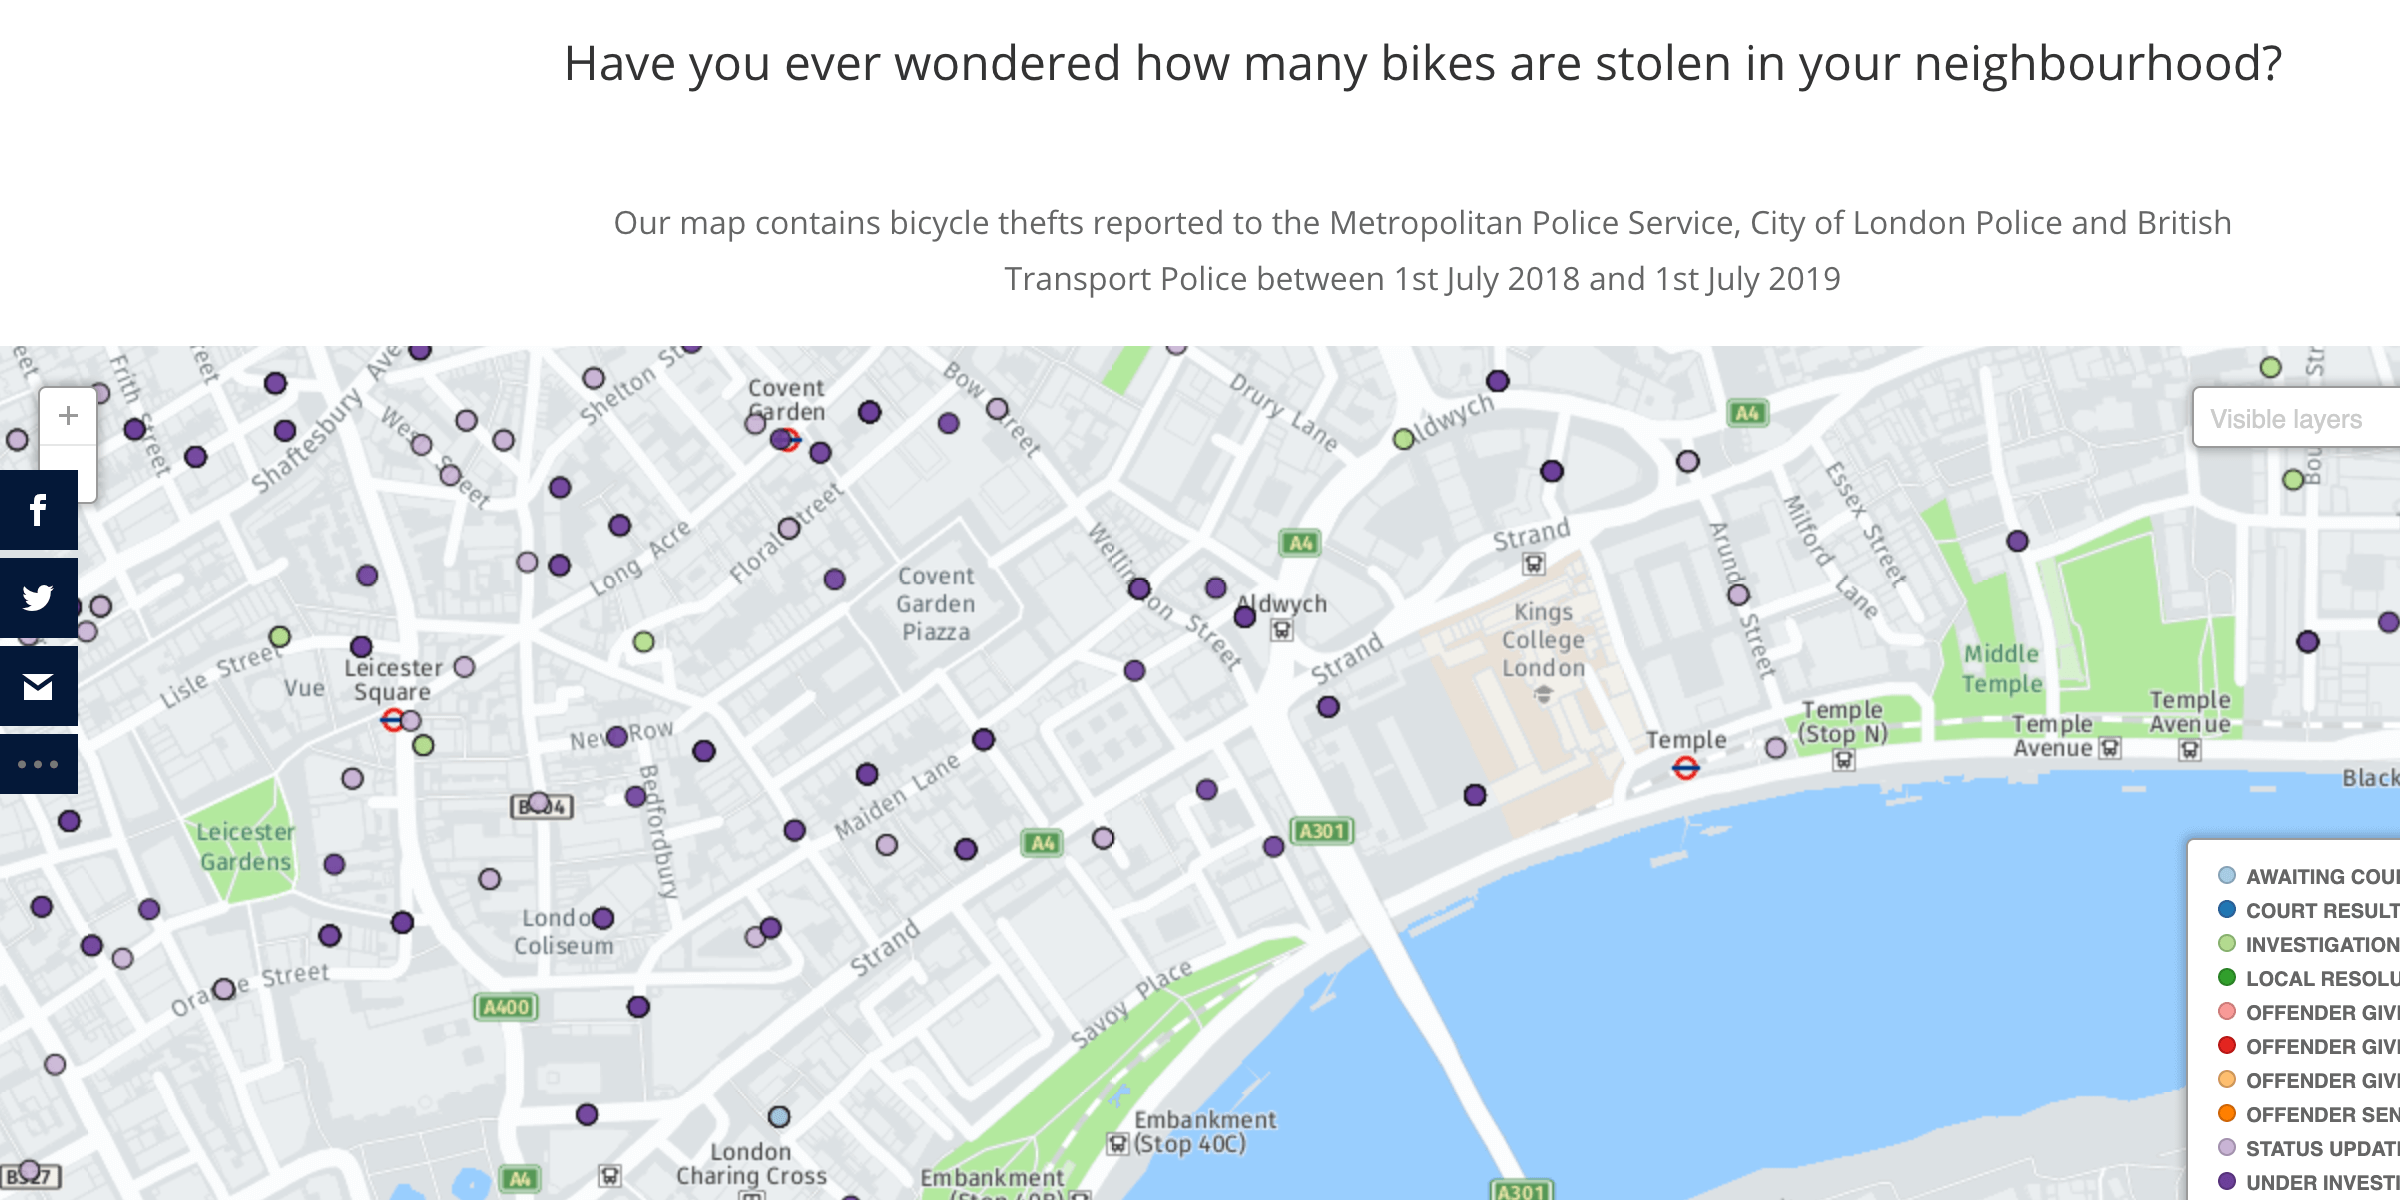 map of london stolen ride